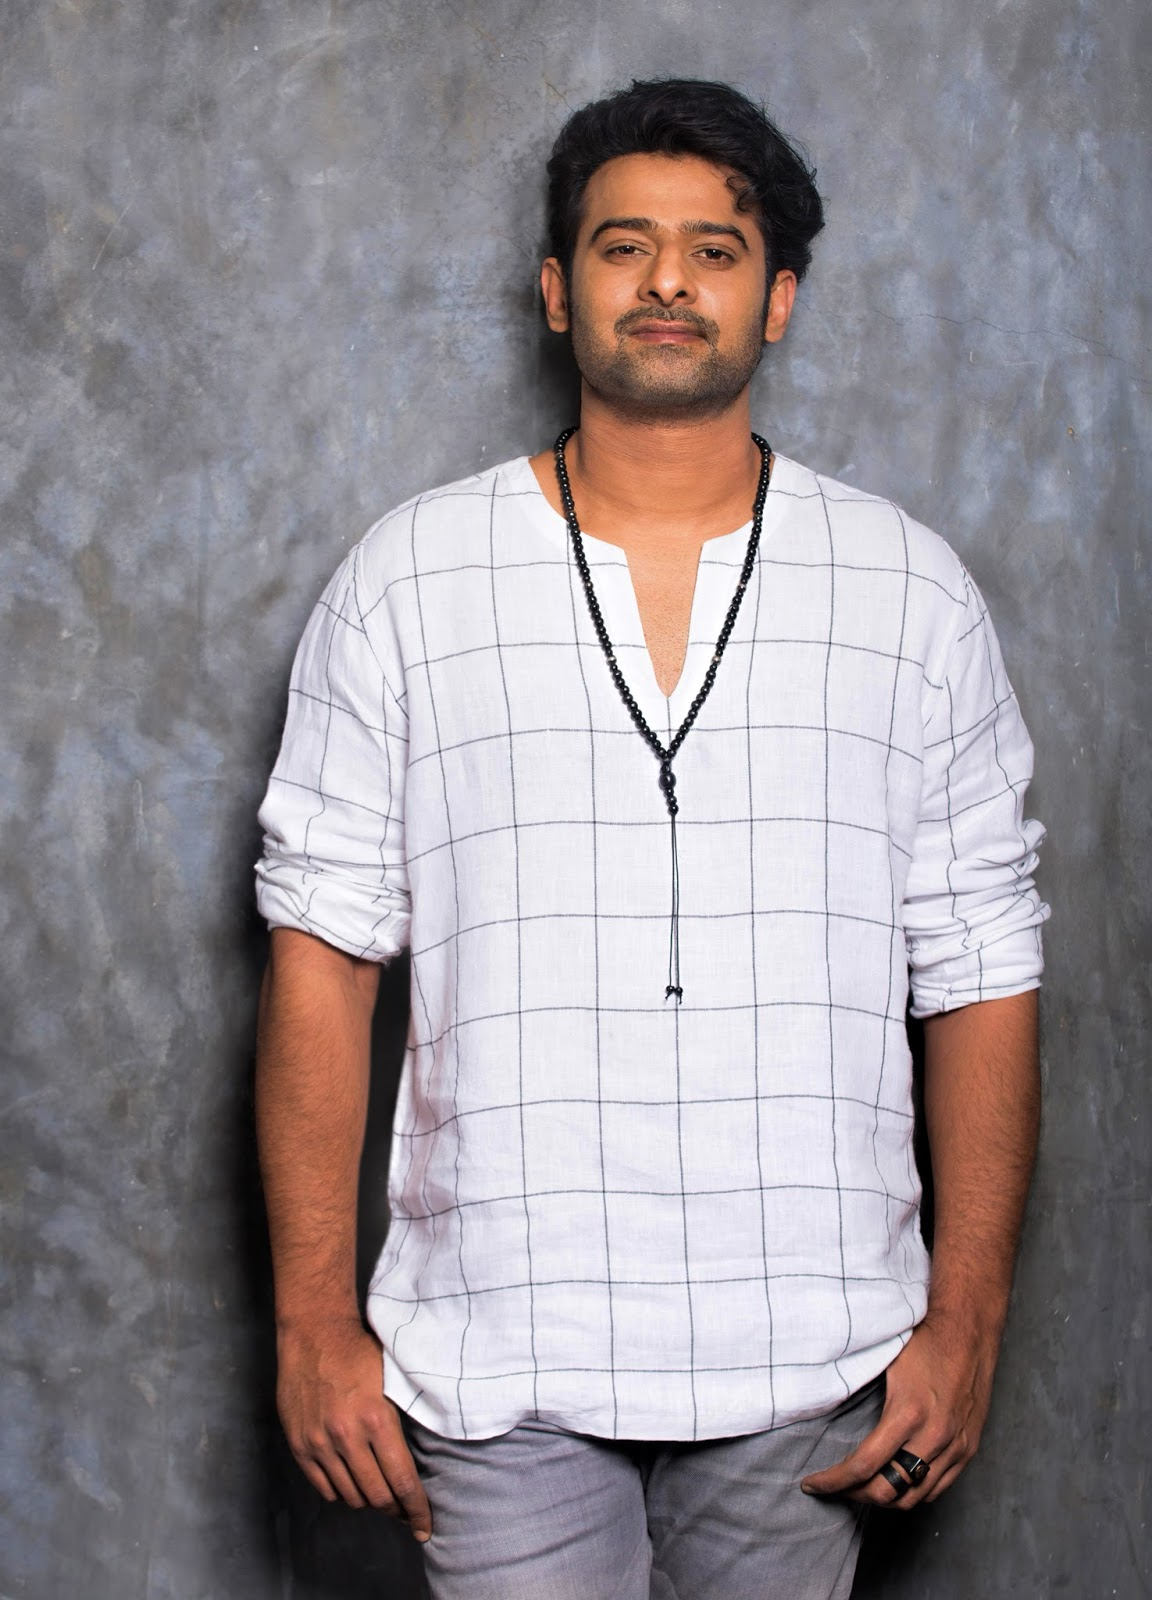 prabhas photos 2017 latest full hd wallpapers hd wallpapers